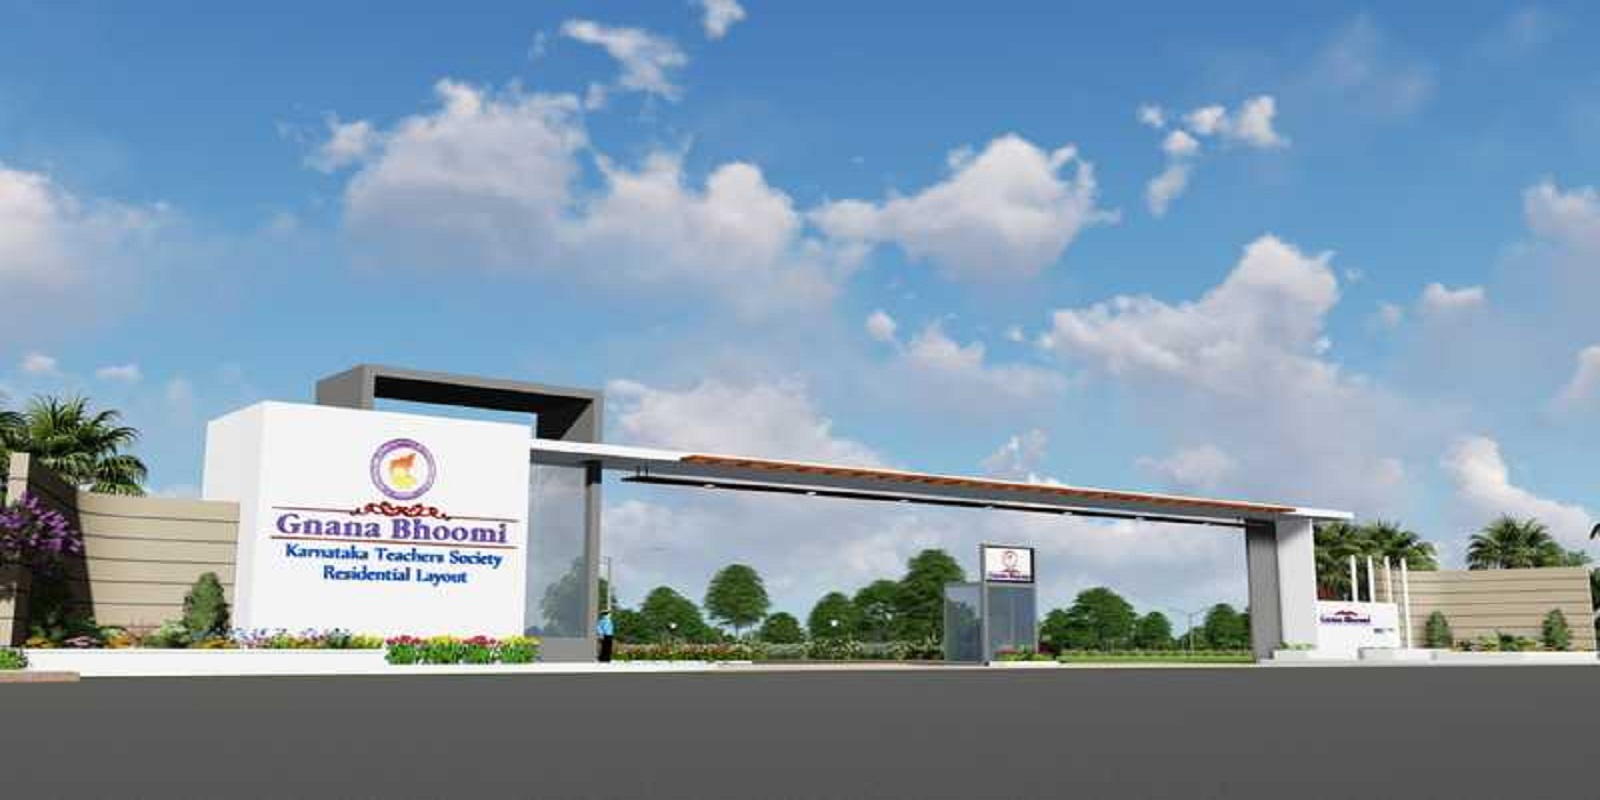 gnana bhoomi layout  project project large image1